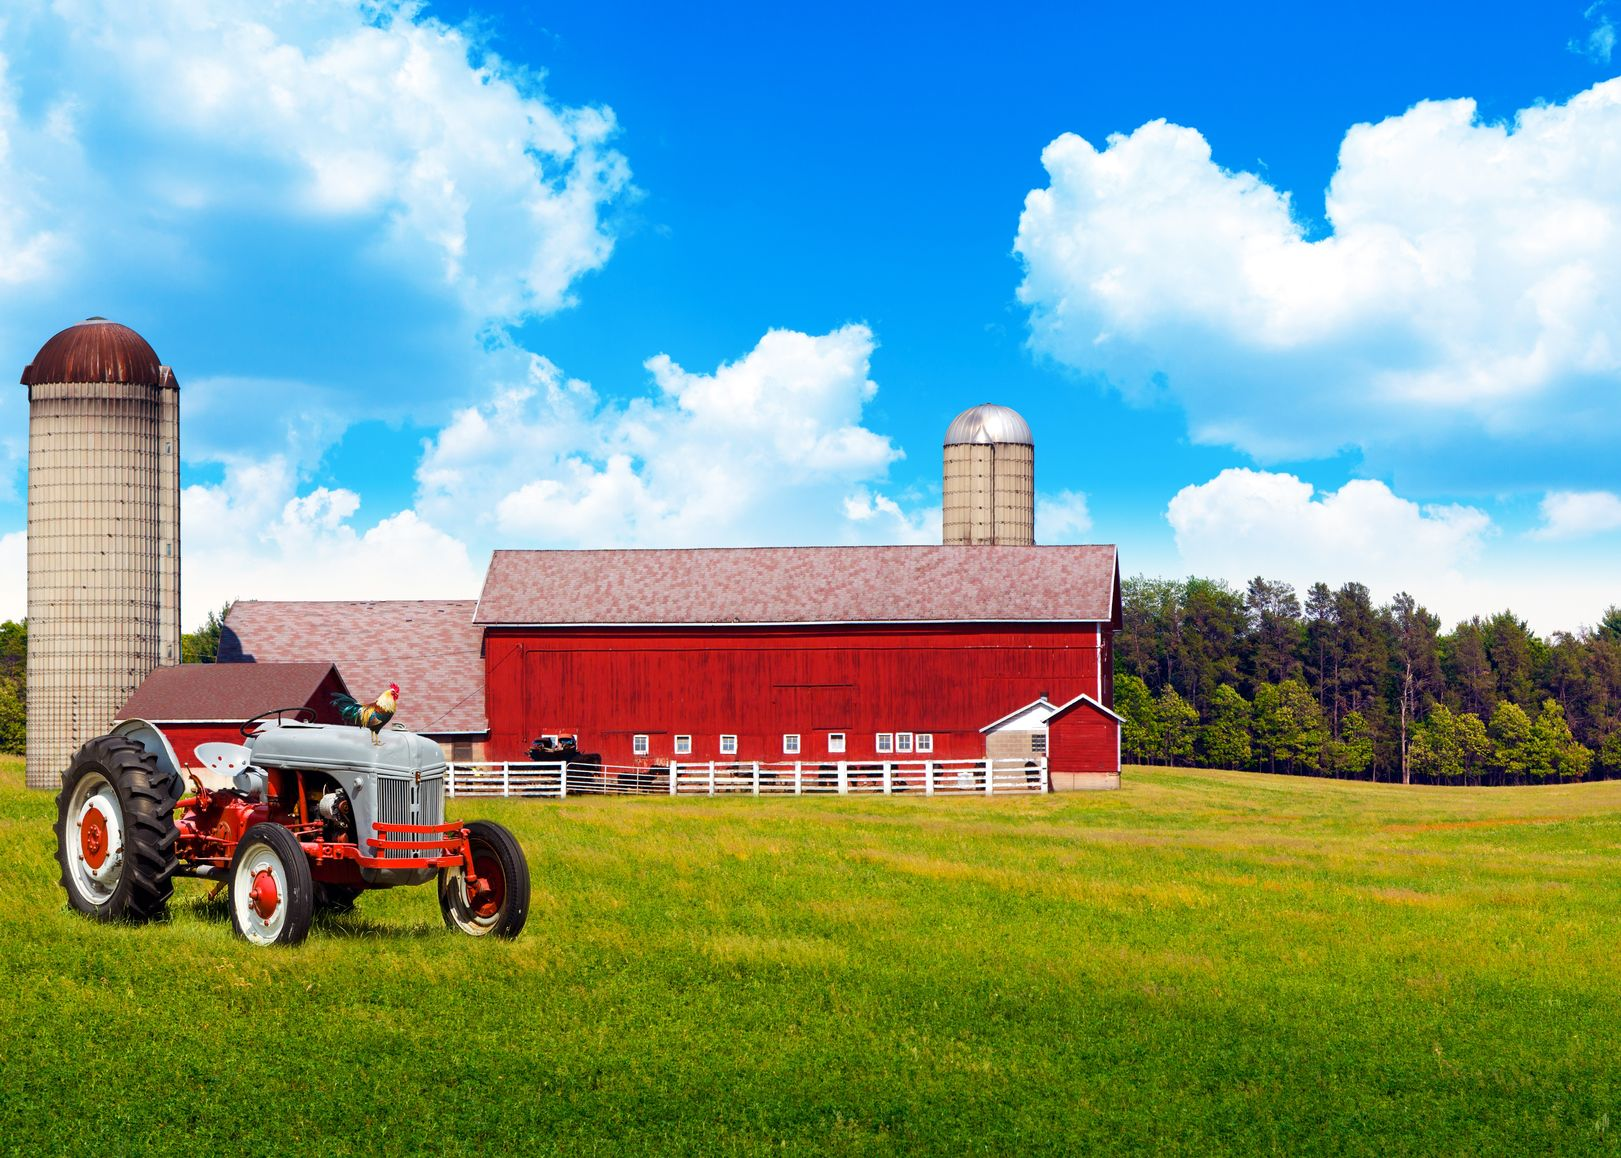 Baltimore Farm & Ranch Insurance